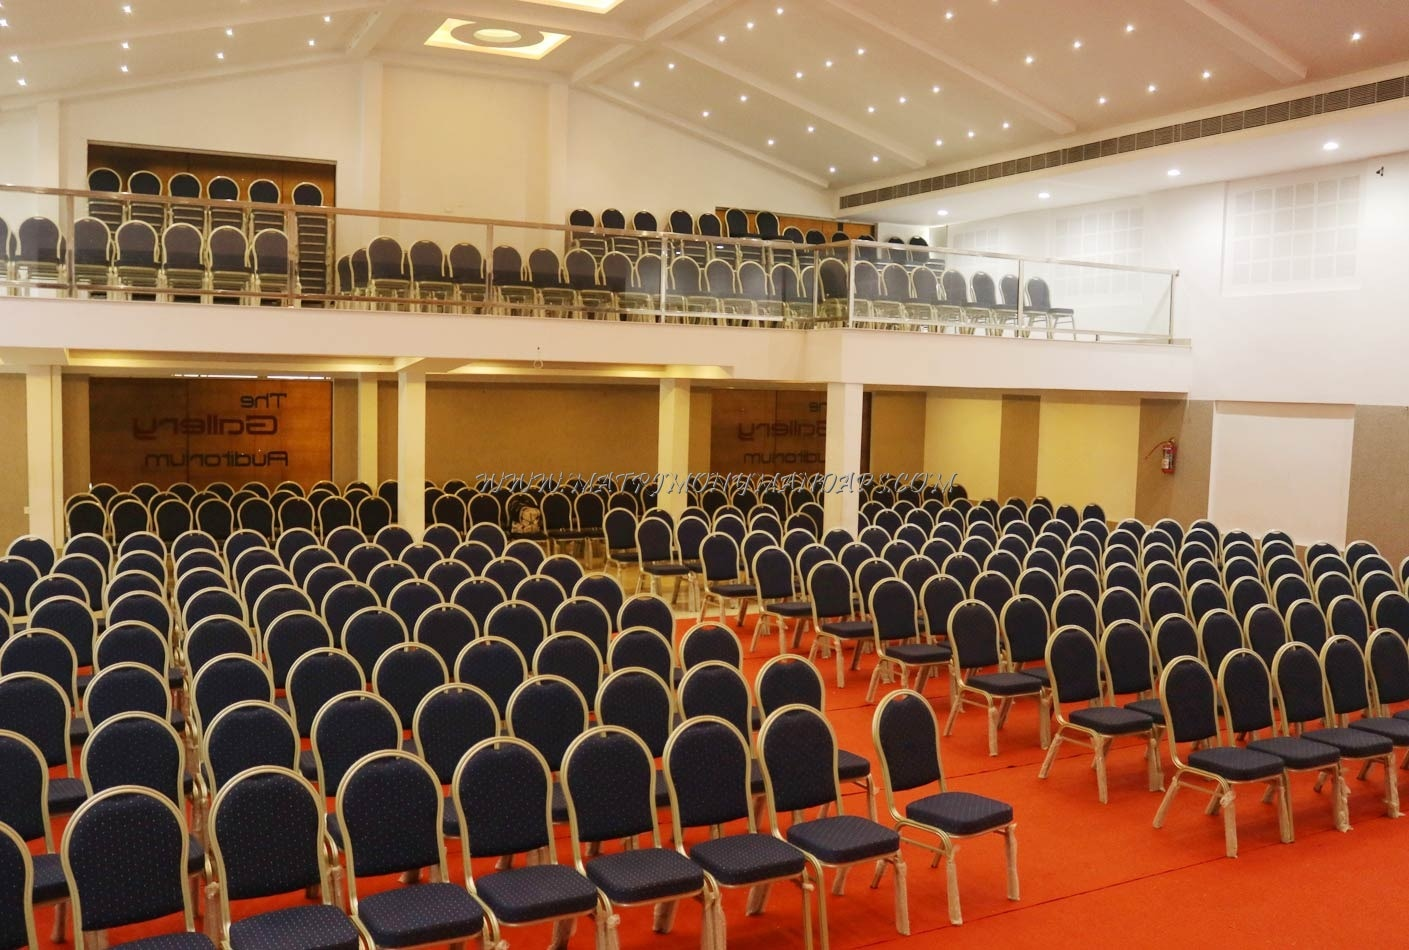 Find the availability of the The Gallery Auditorium - Hall 1 (A/C) in Thoppumpady, Kochi and avail special offers